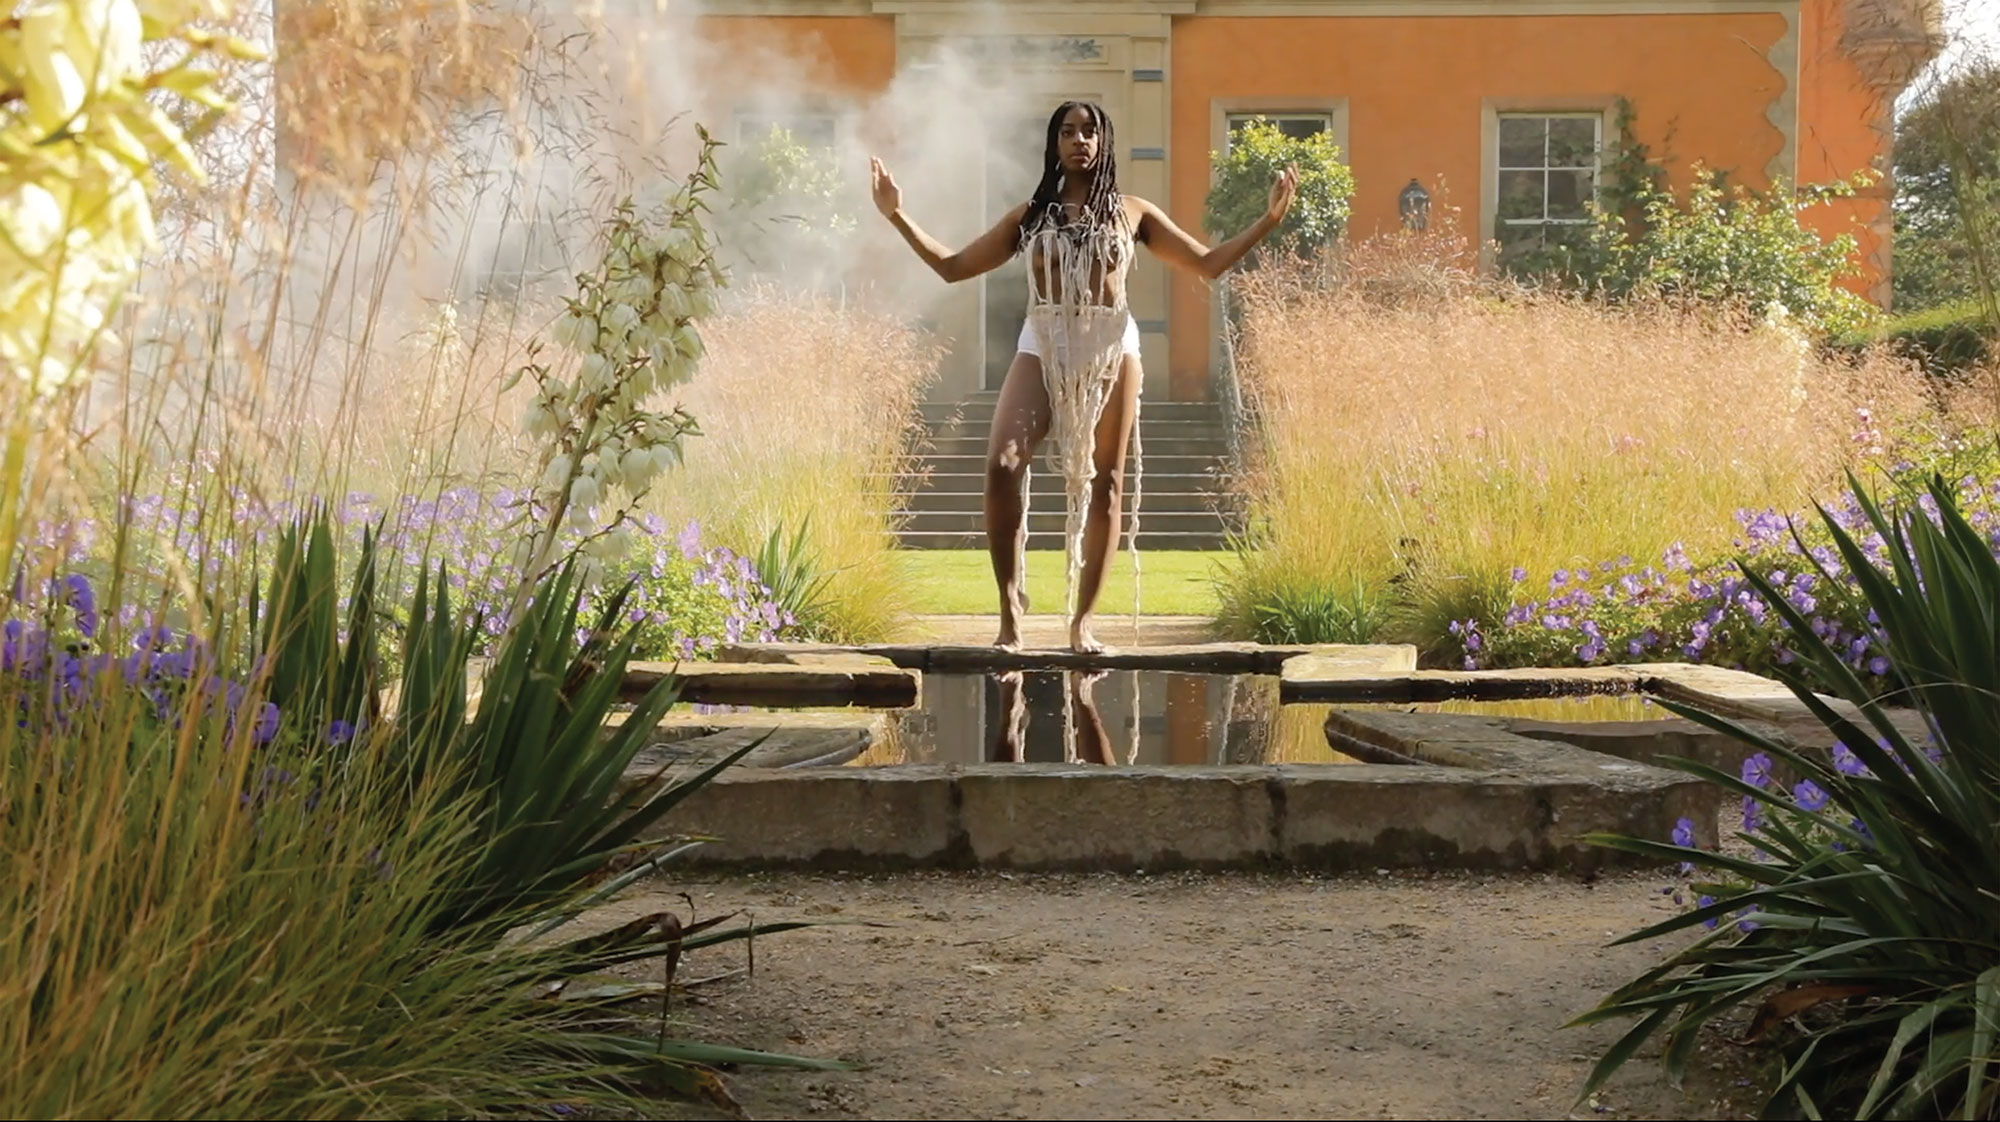 A still image from Alberta Whittle's 'RESET: 2020' showing a woman in a garden with her arms raised